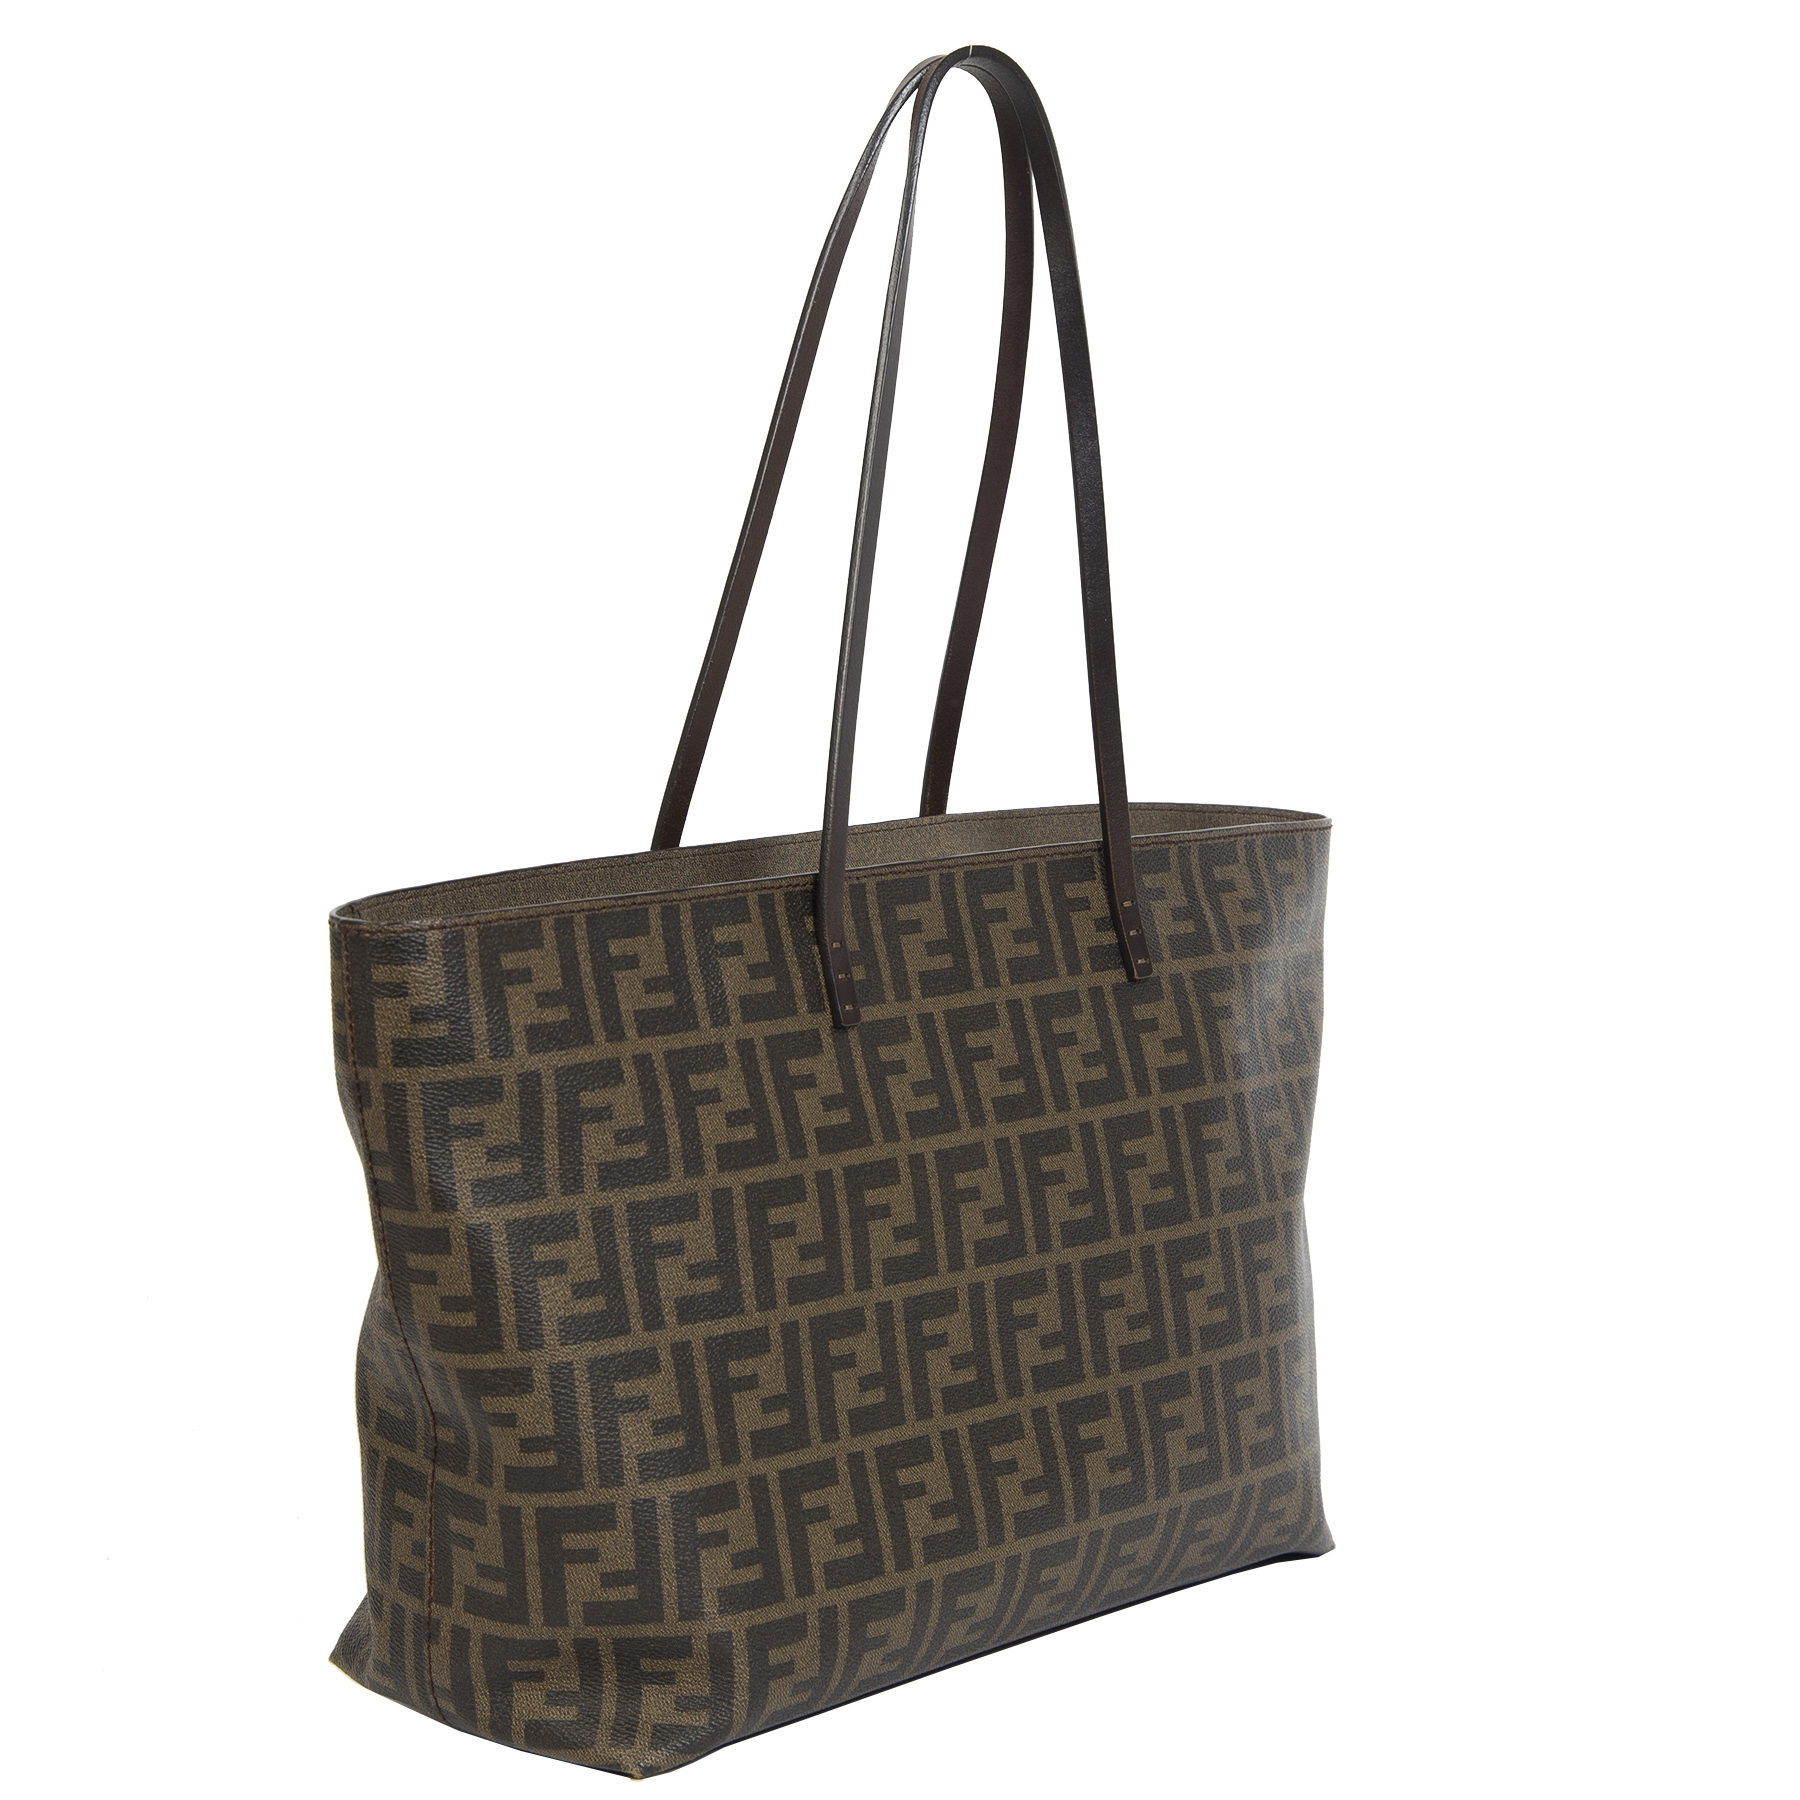 Fendi Monogram Shopper Tote Bag